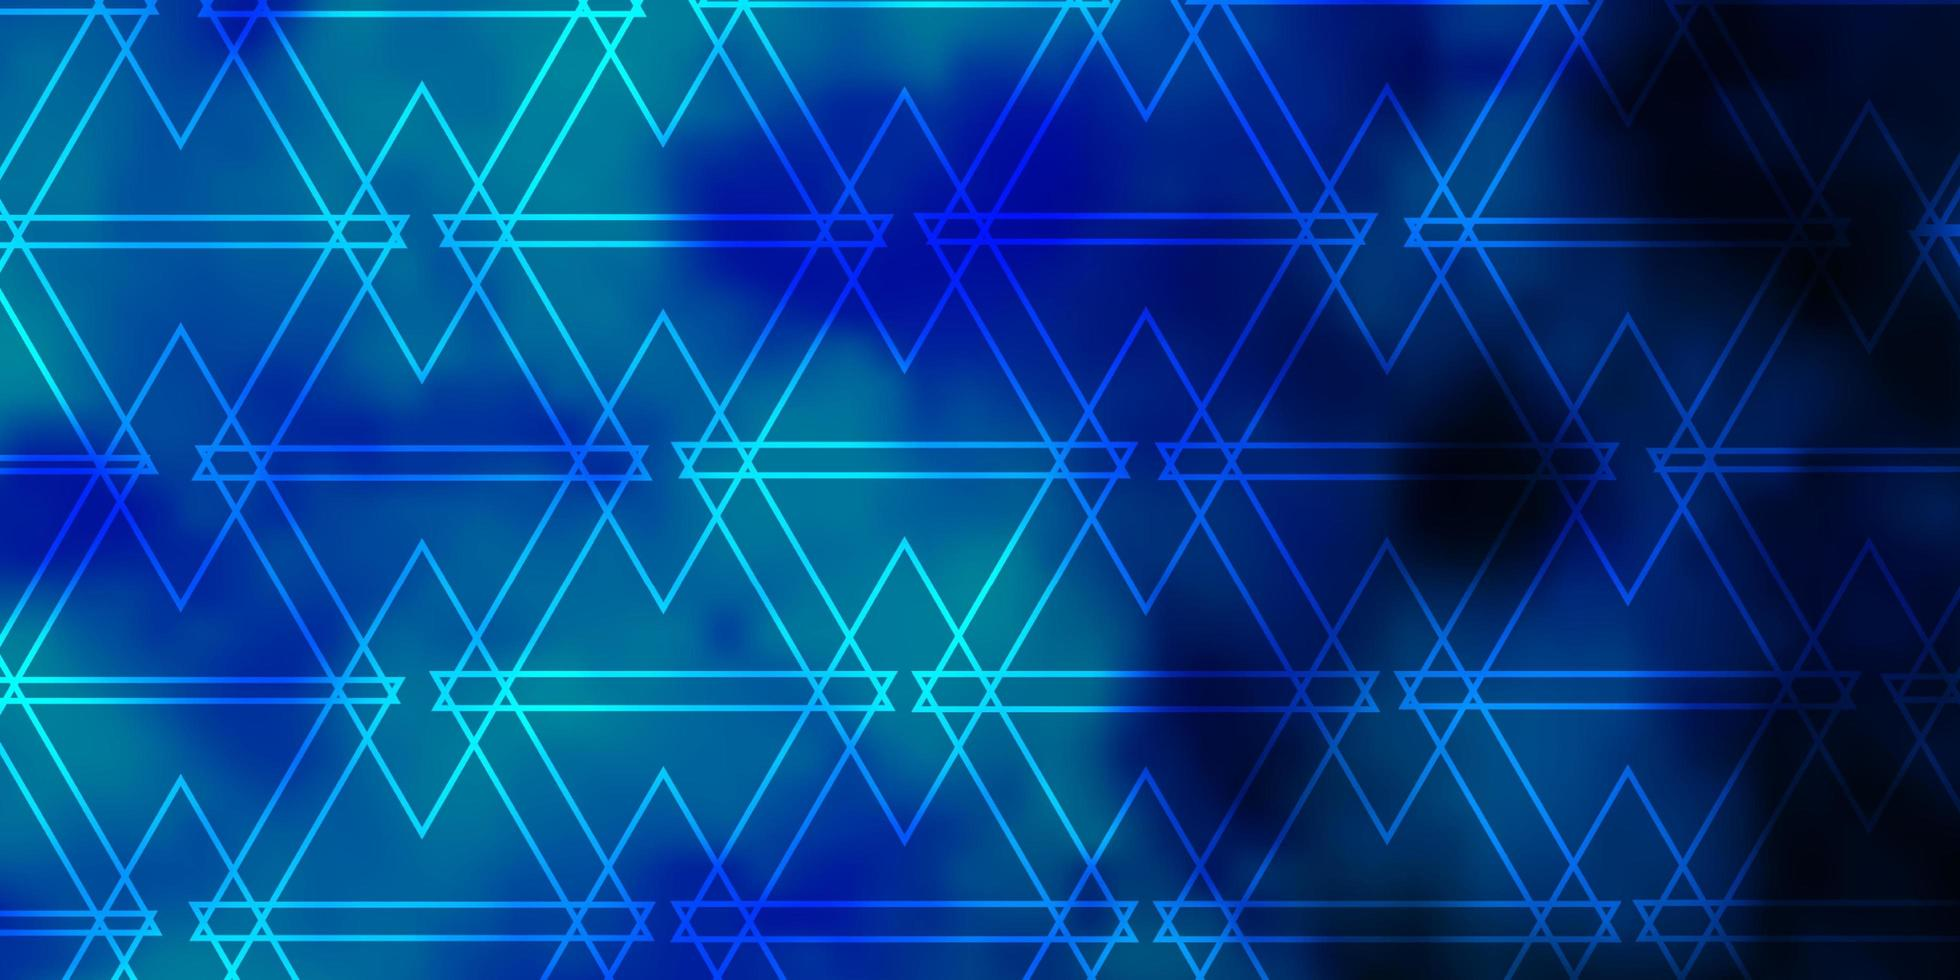 Light BLUE vector backdrop with lines, triangles.